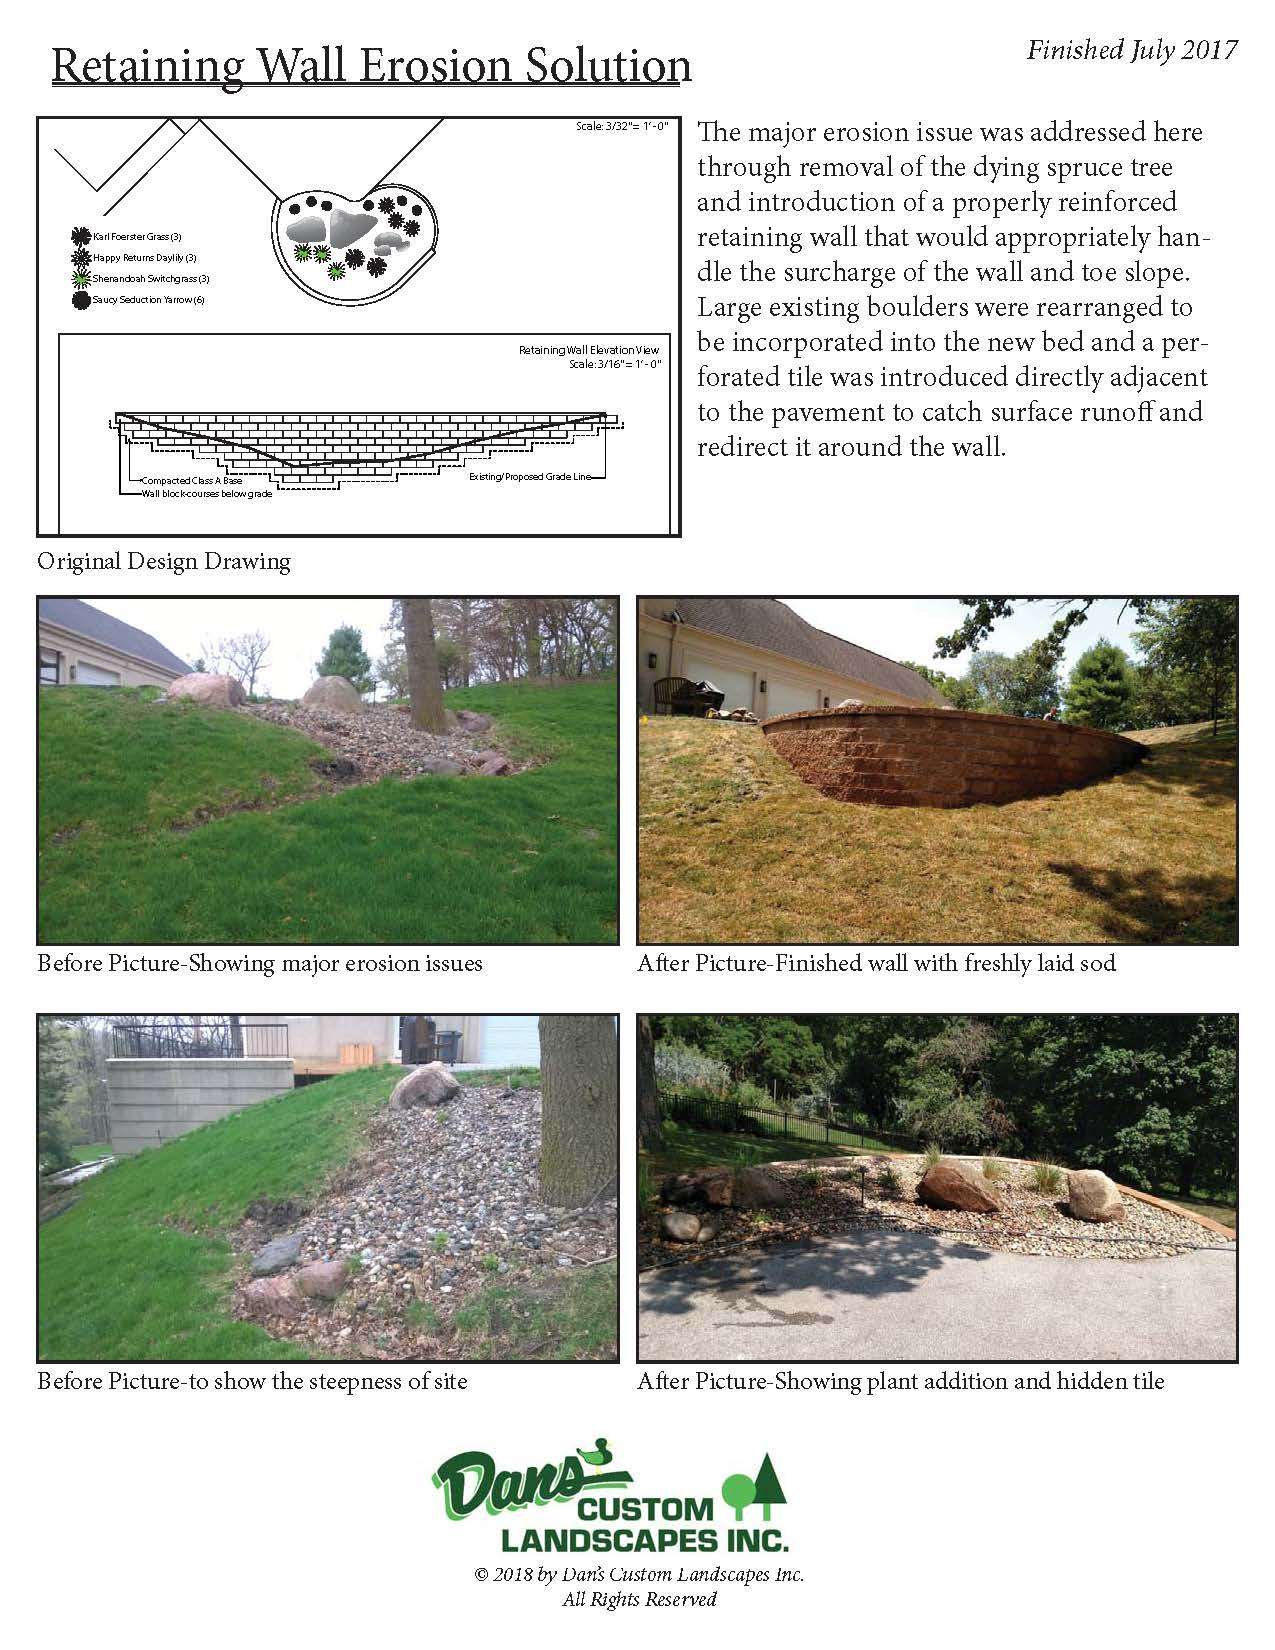 Retaining wall erosion solution